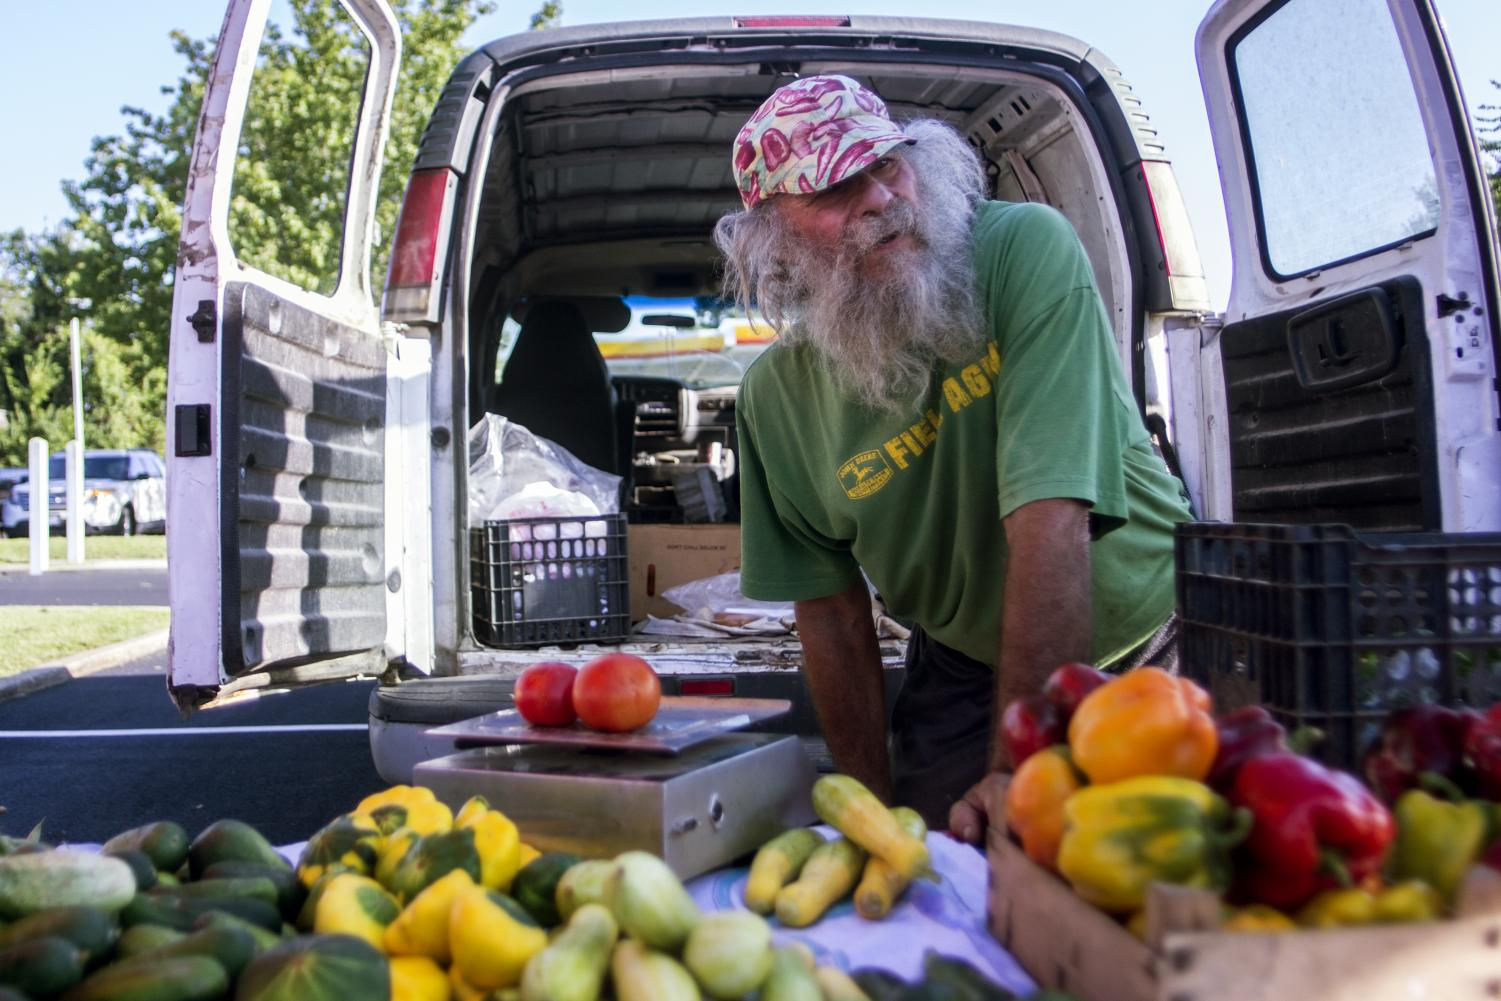 Steven Smith, tends to his stand during the market, Saturday, Sept. 1, 2018 at the Carbondale Farmers Market. (Isabel Miller | @IsabelMillerDE)